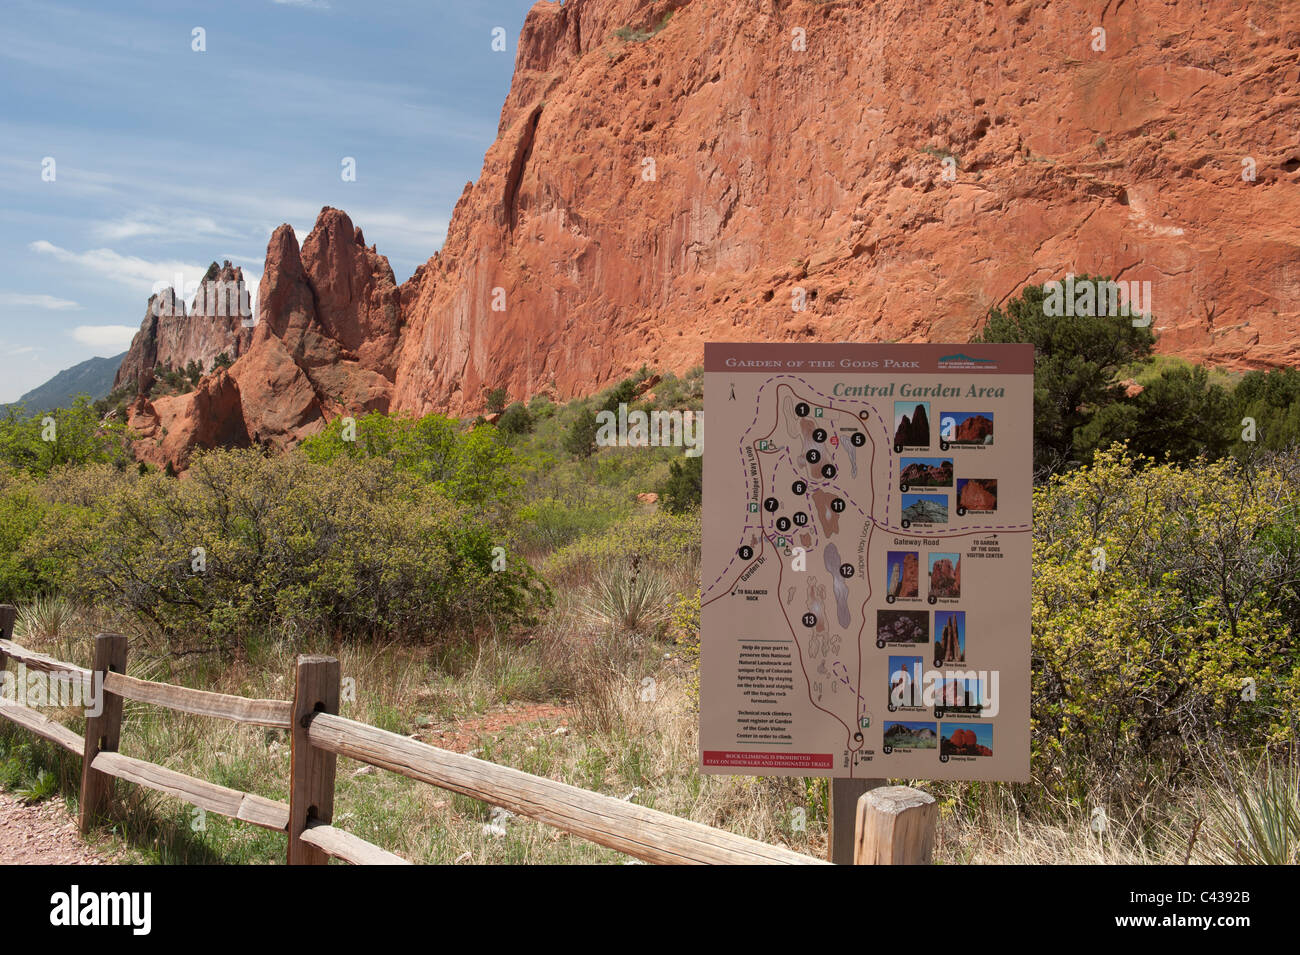 Trail sign near the North Main Parking lot, Garden of the Gods, Colorado Springs CO - Stock Image